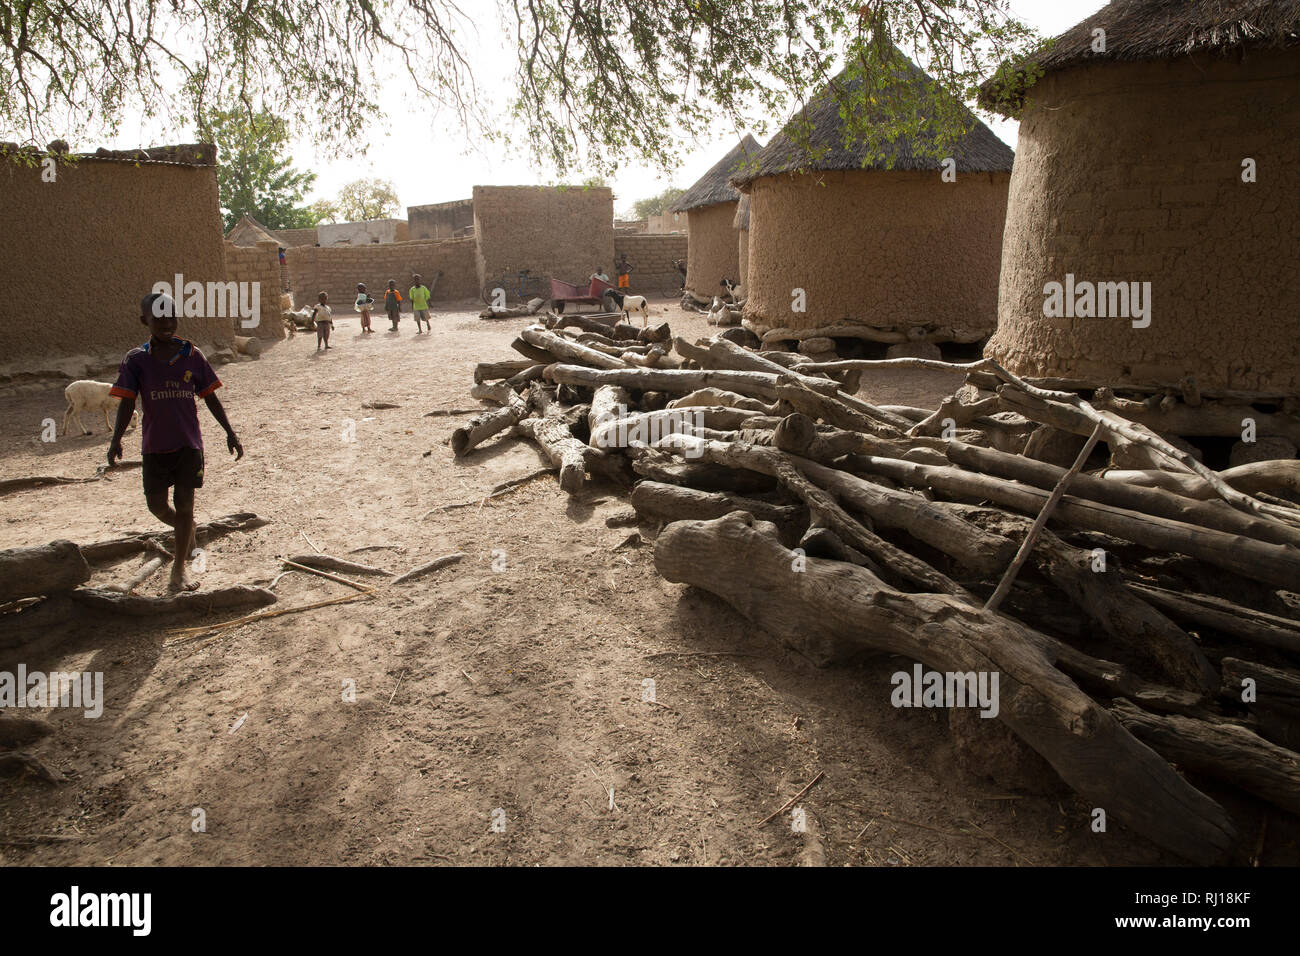 Samba village, Yako Province, Burkina Faso: Village daily life beside Collette Guiguemde's compound. Stock Photo